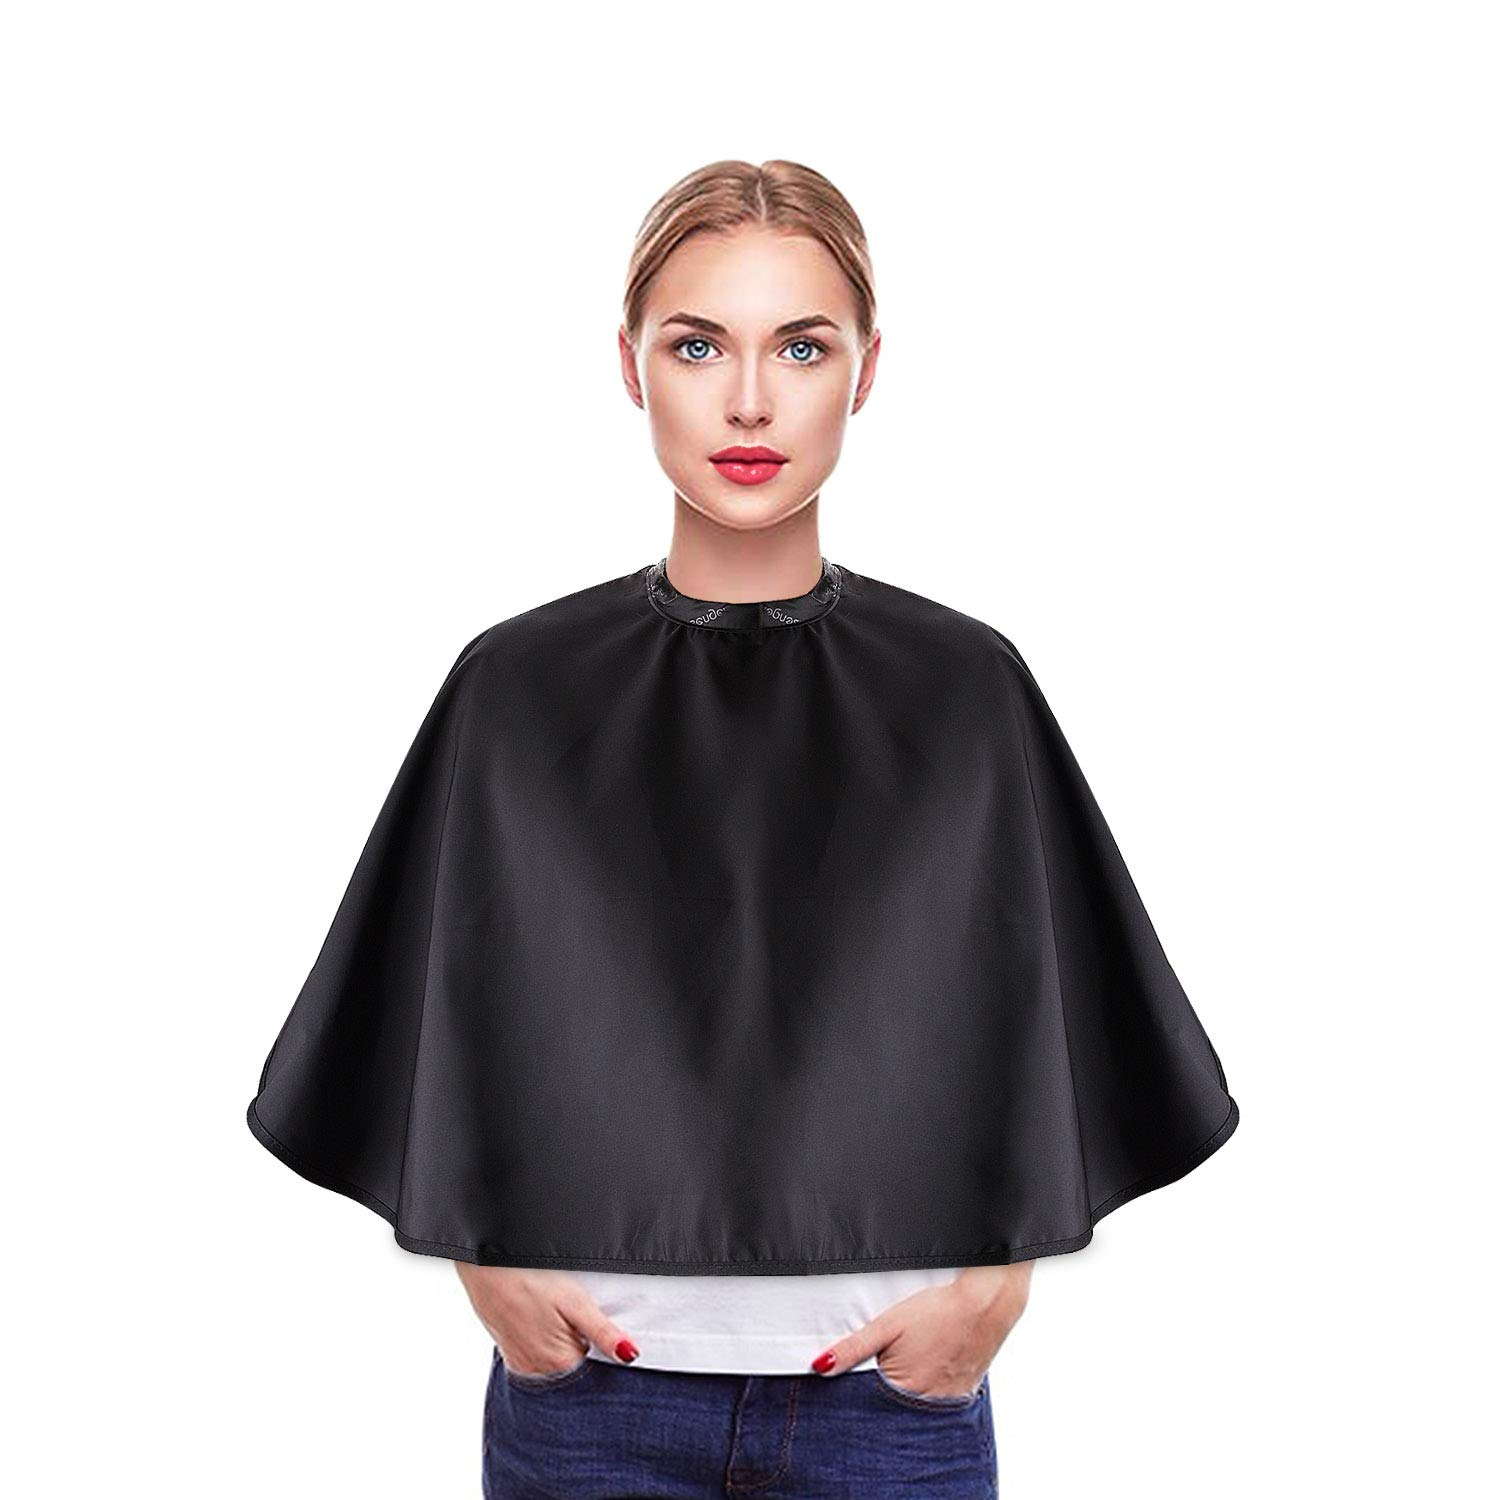 Noverlife Black Makeup Cape, Chemical & Water Proof Beauty Salon Shorty Smock for Clients, Lightweight Comb-out Beard Apron Shortie Makeup Bib Styling Shampoo Cape for Makeup Artist Beautician by Noverlife